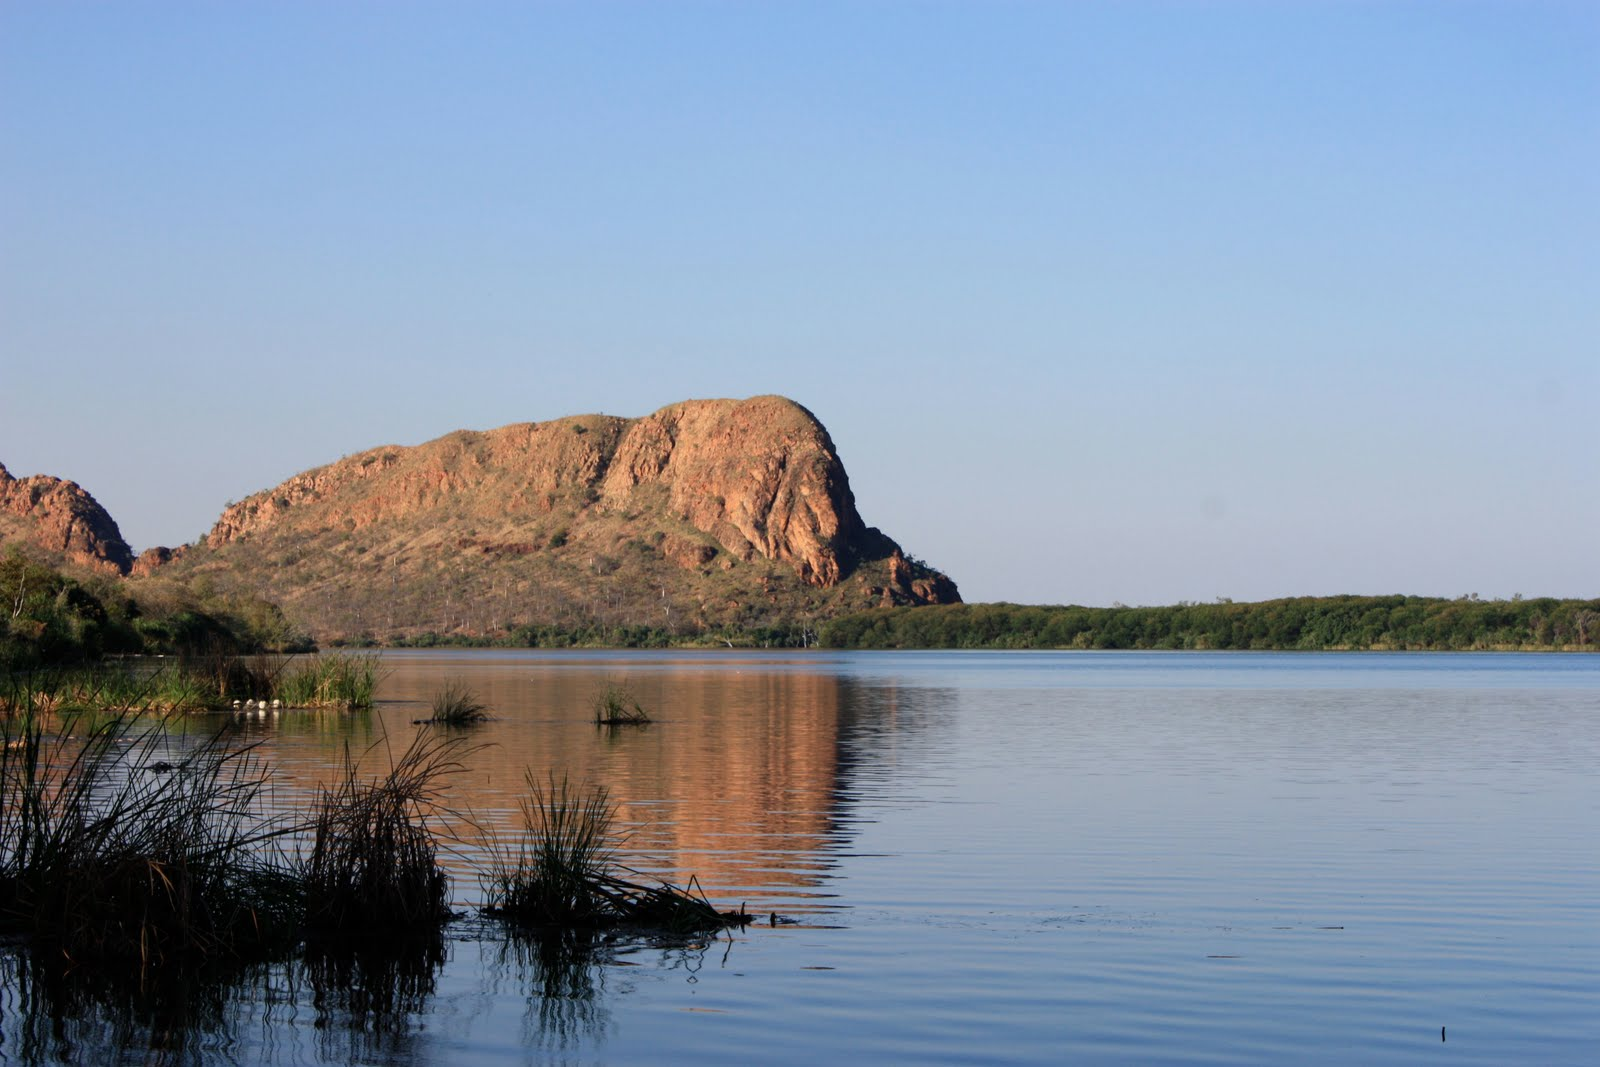 Kununurra Australia  city pictures gallery : Durnins On Safari: Western Australia Kununurra Region